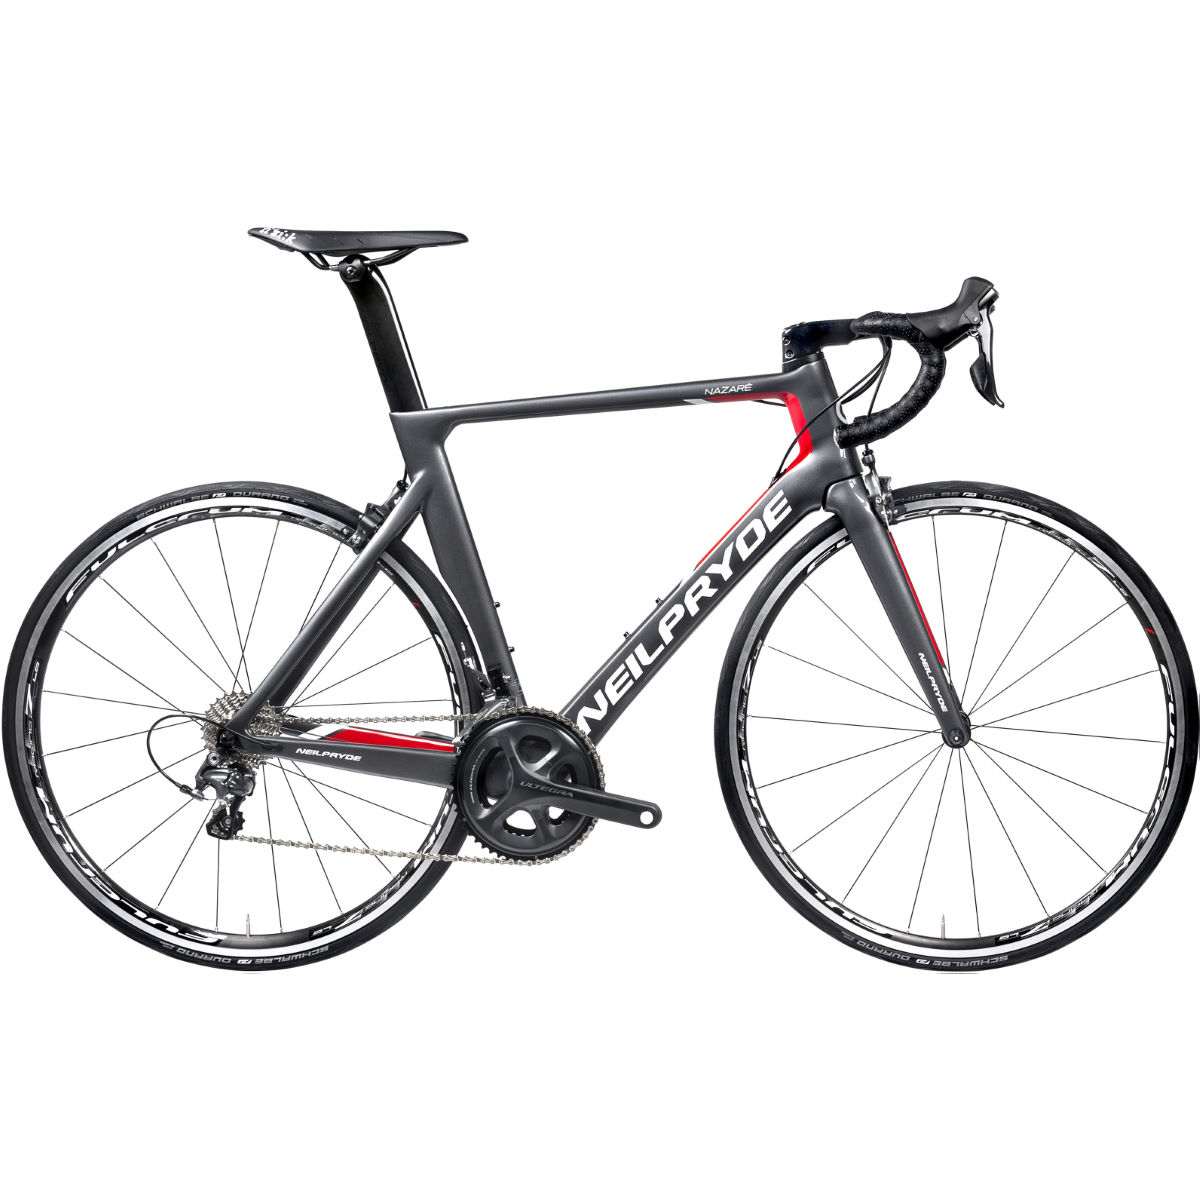 Vélo de route NeilPryde Nazare (Ultegra, 2017) - Medium Stock Bike